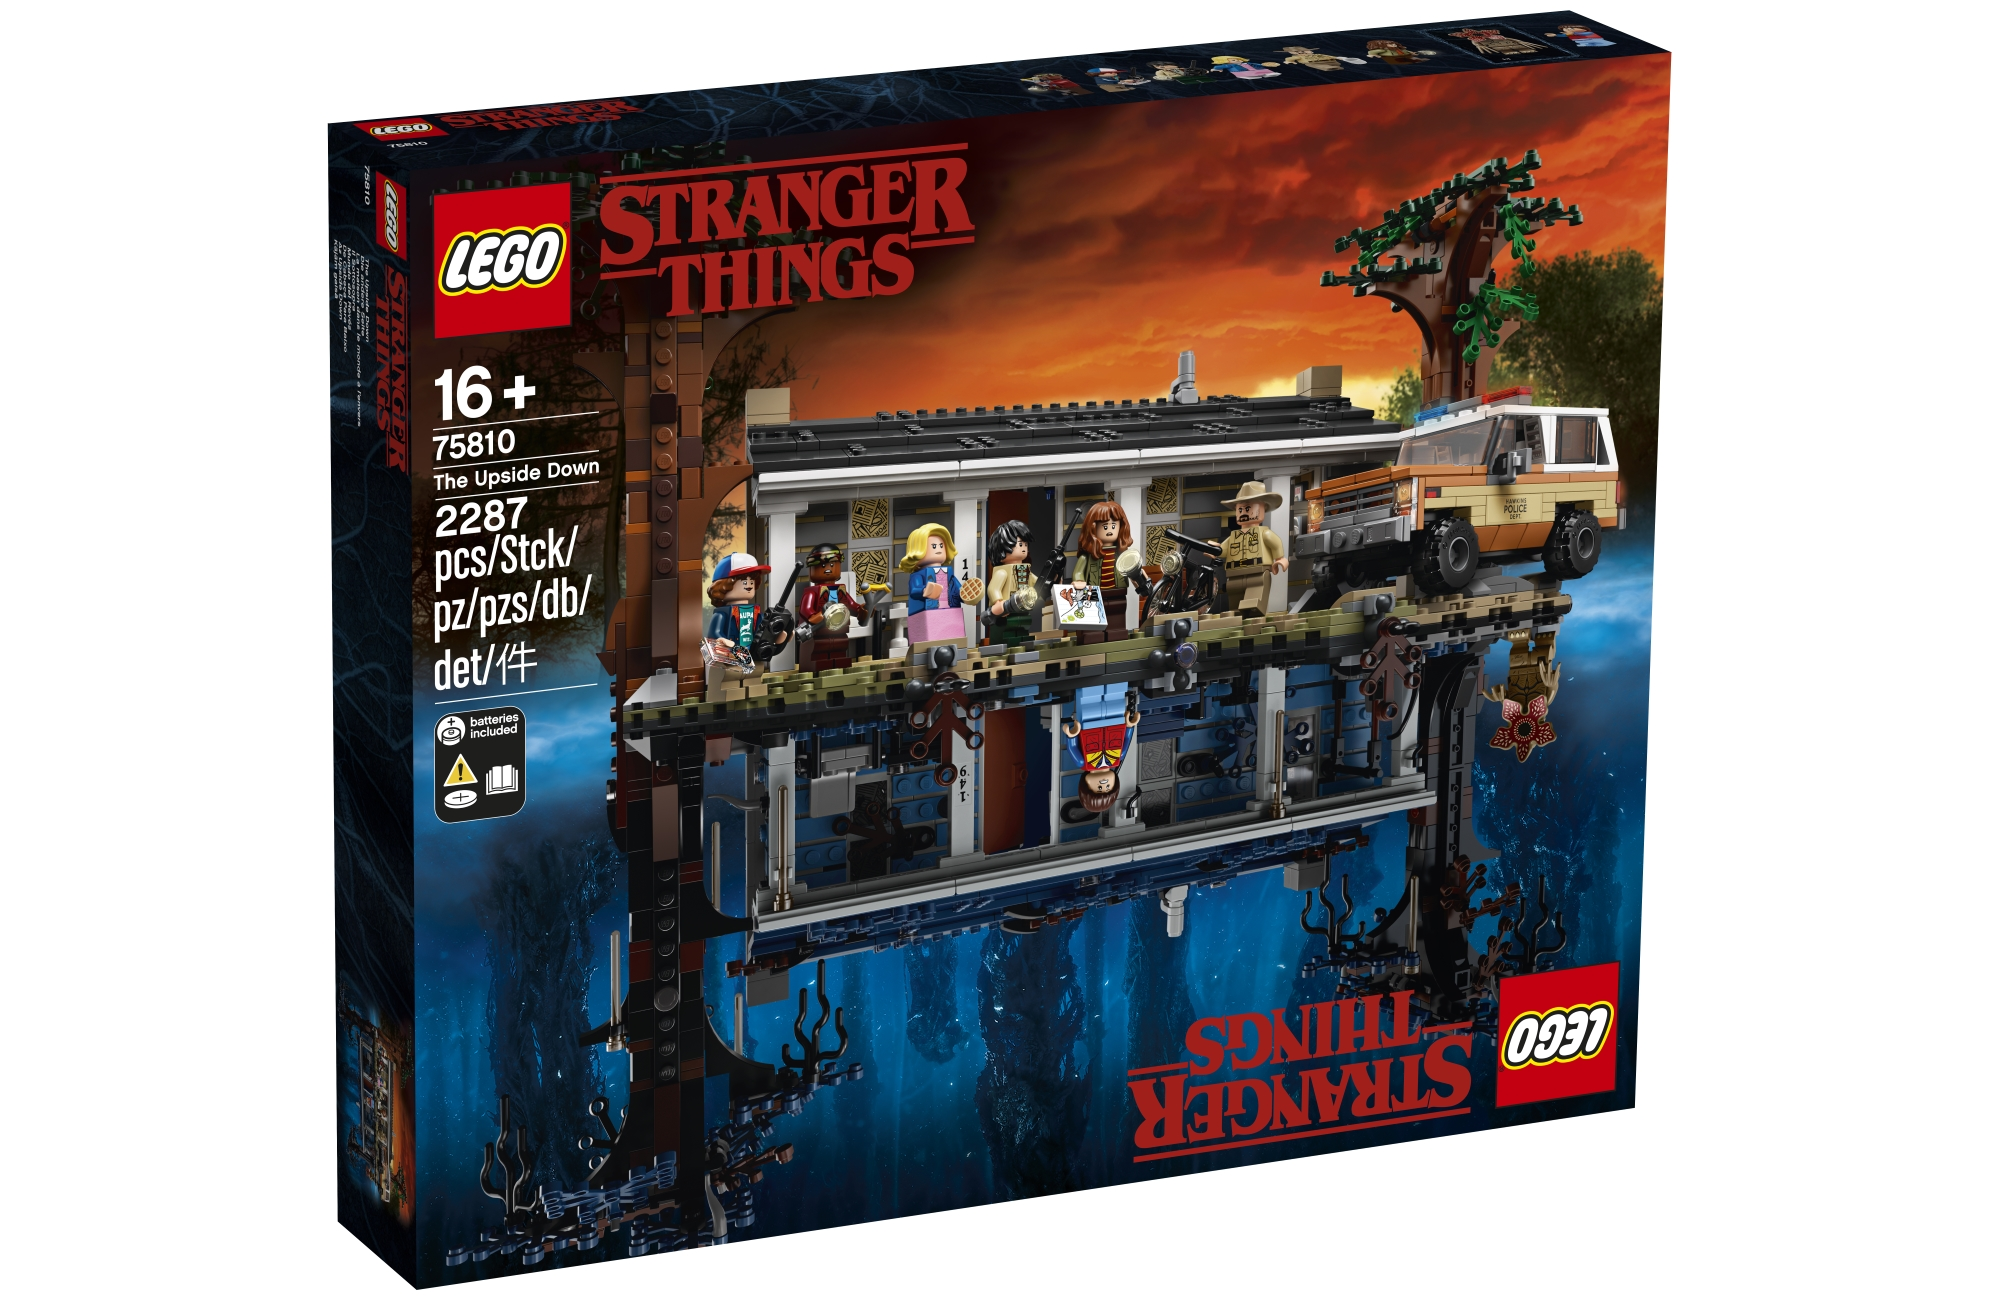 Stranger Things turns Lego up to eleven